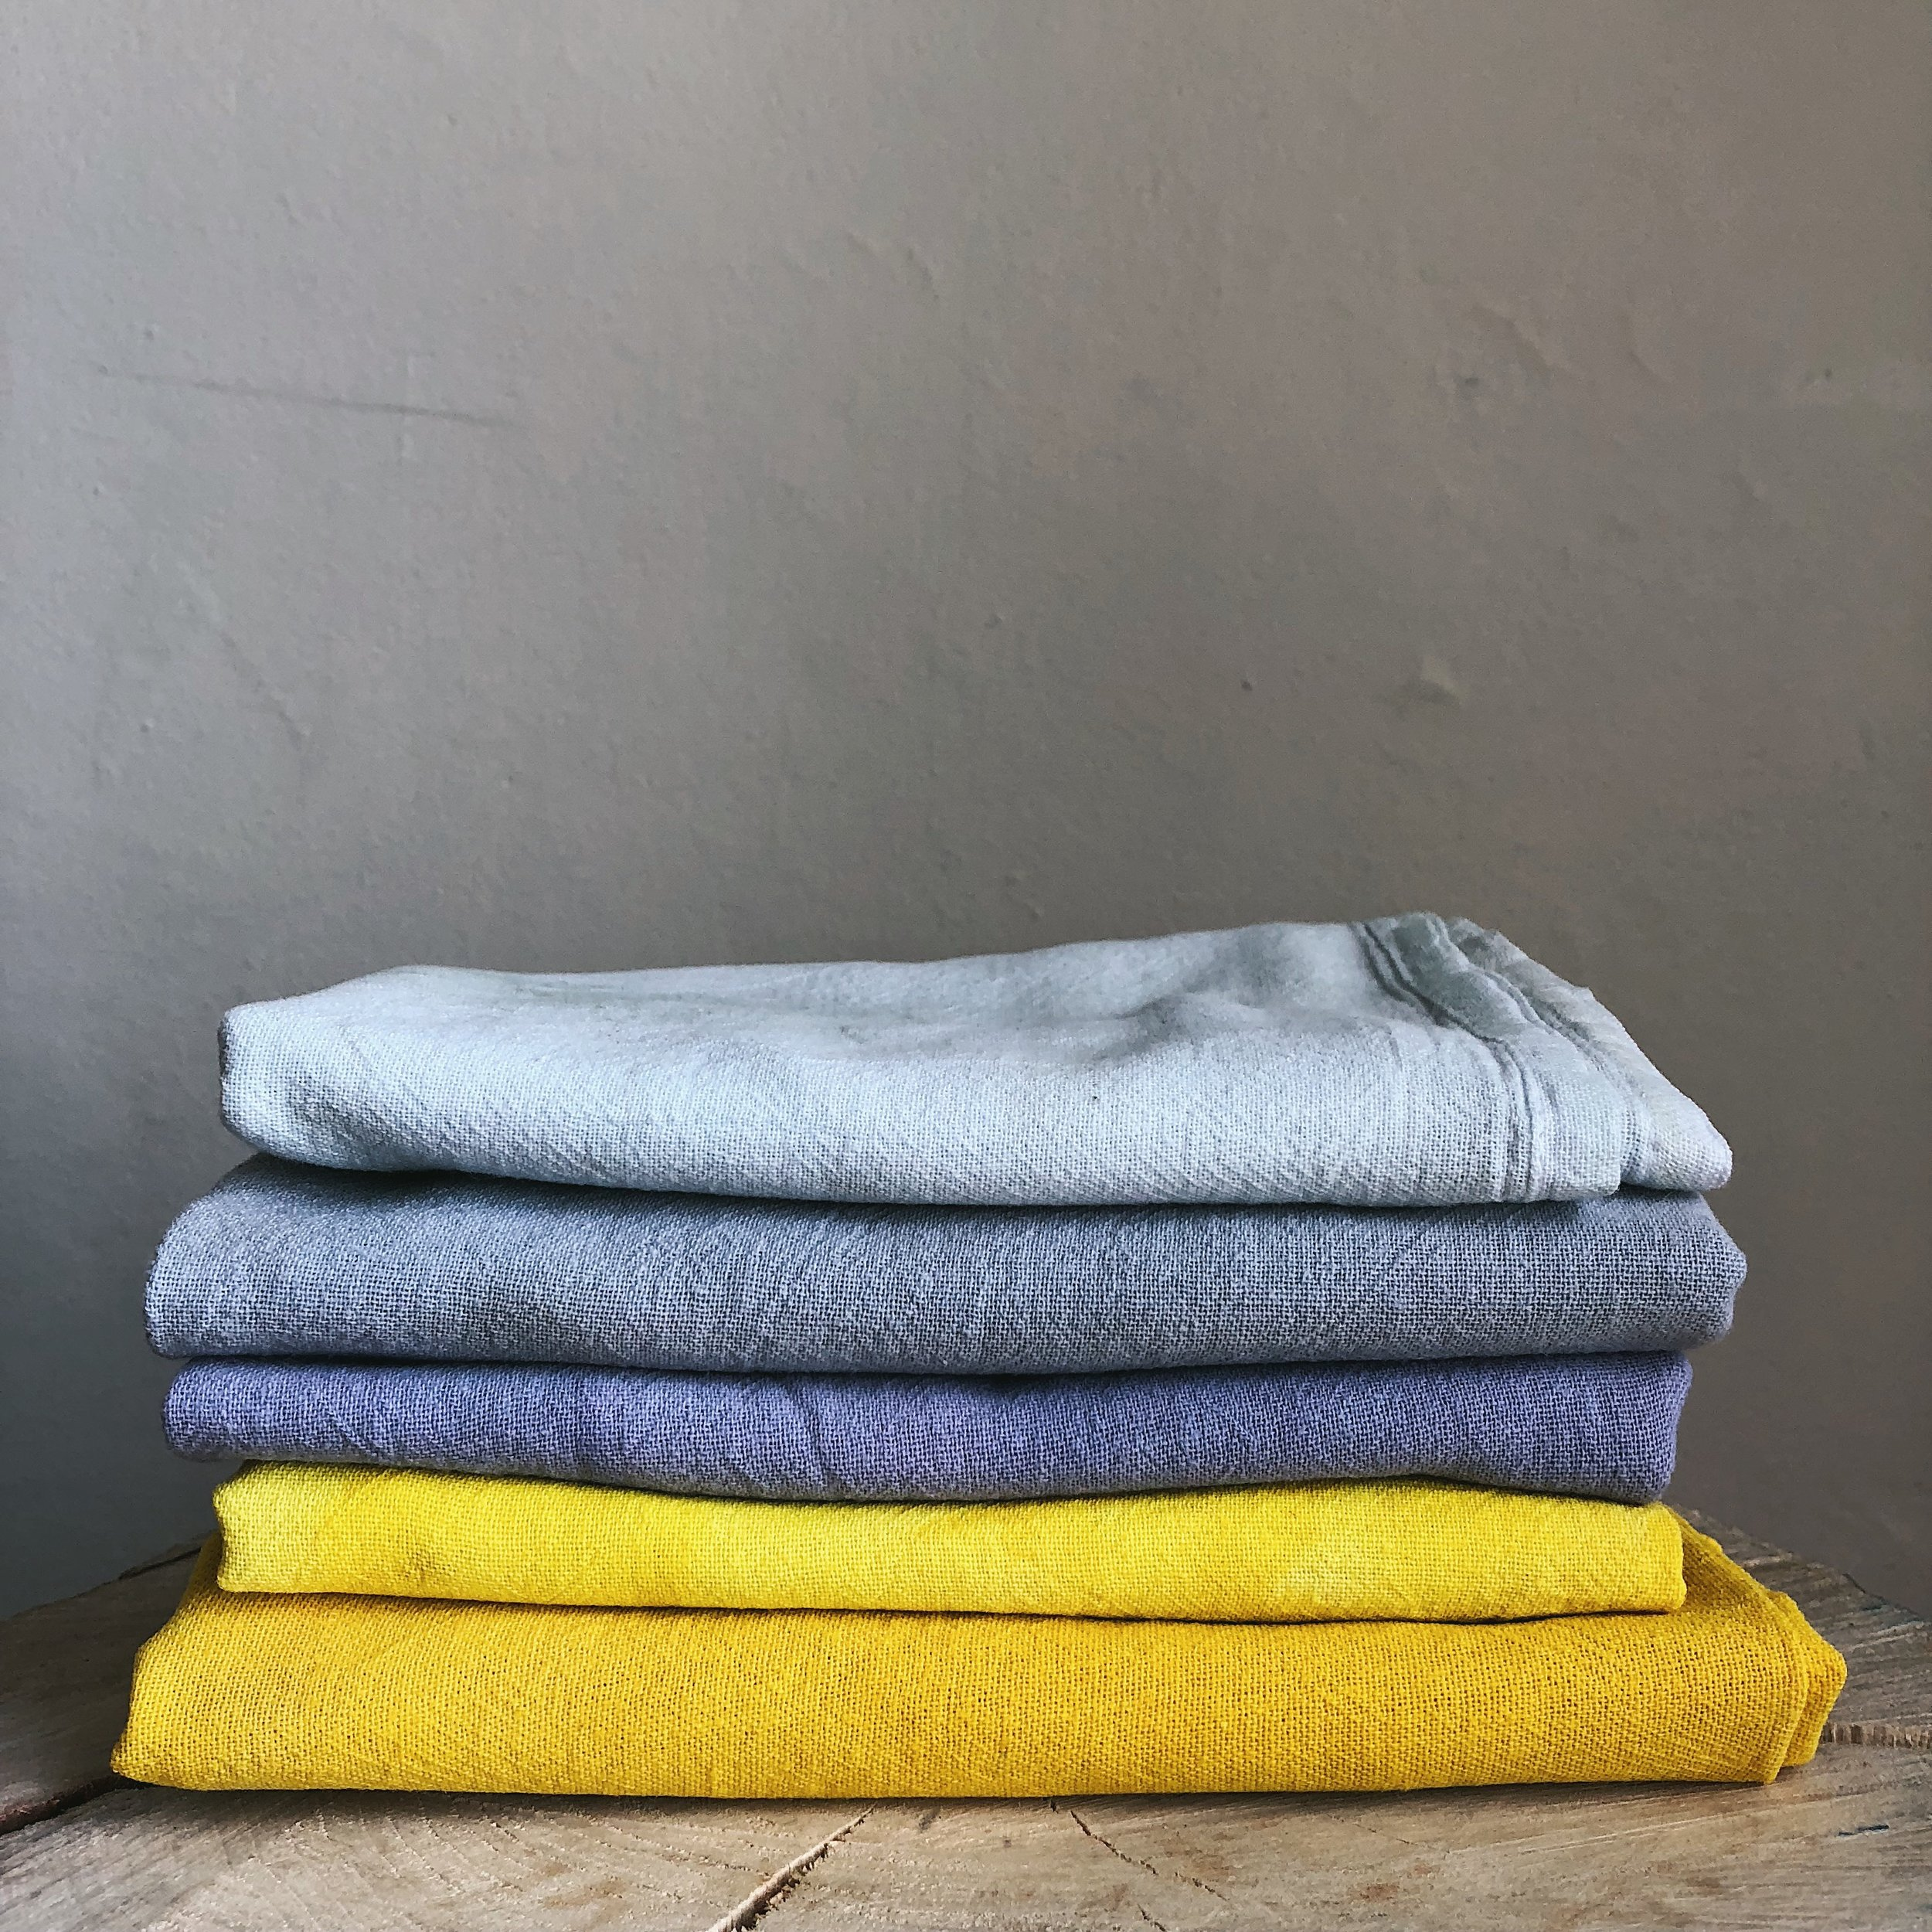 Natural Dye, Veggie Dye Kitchen Towels